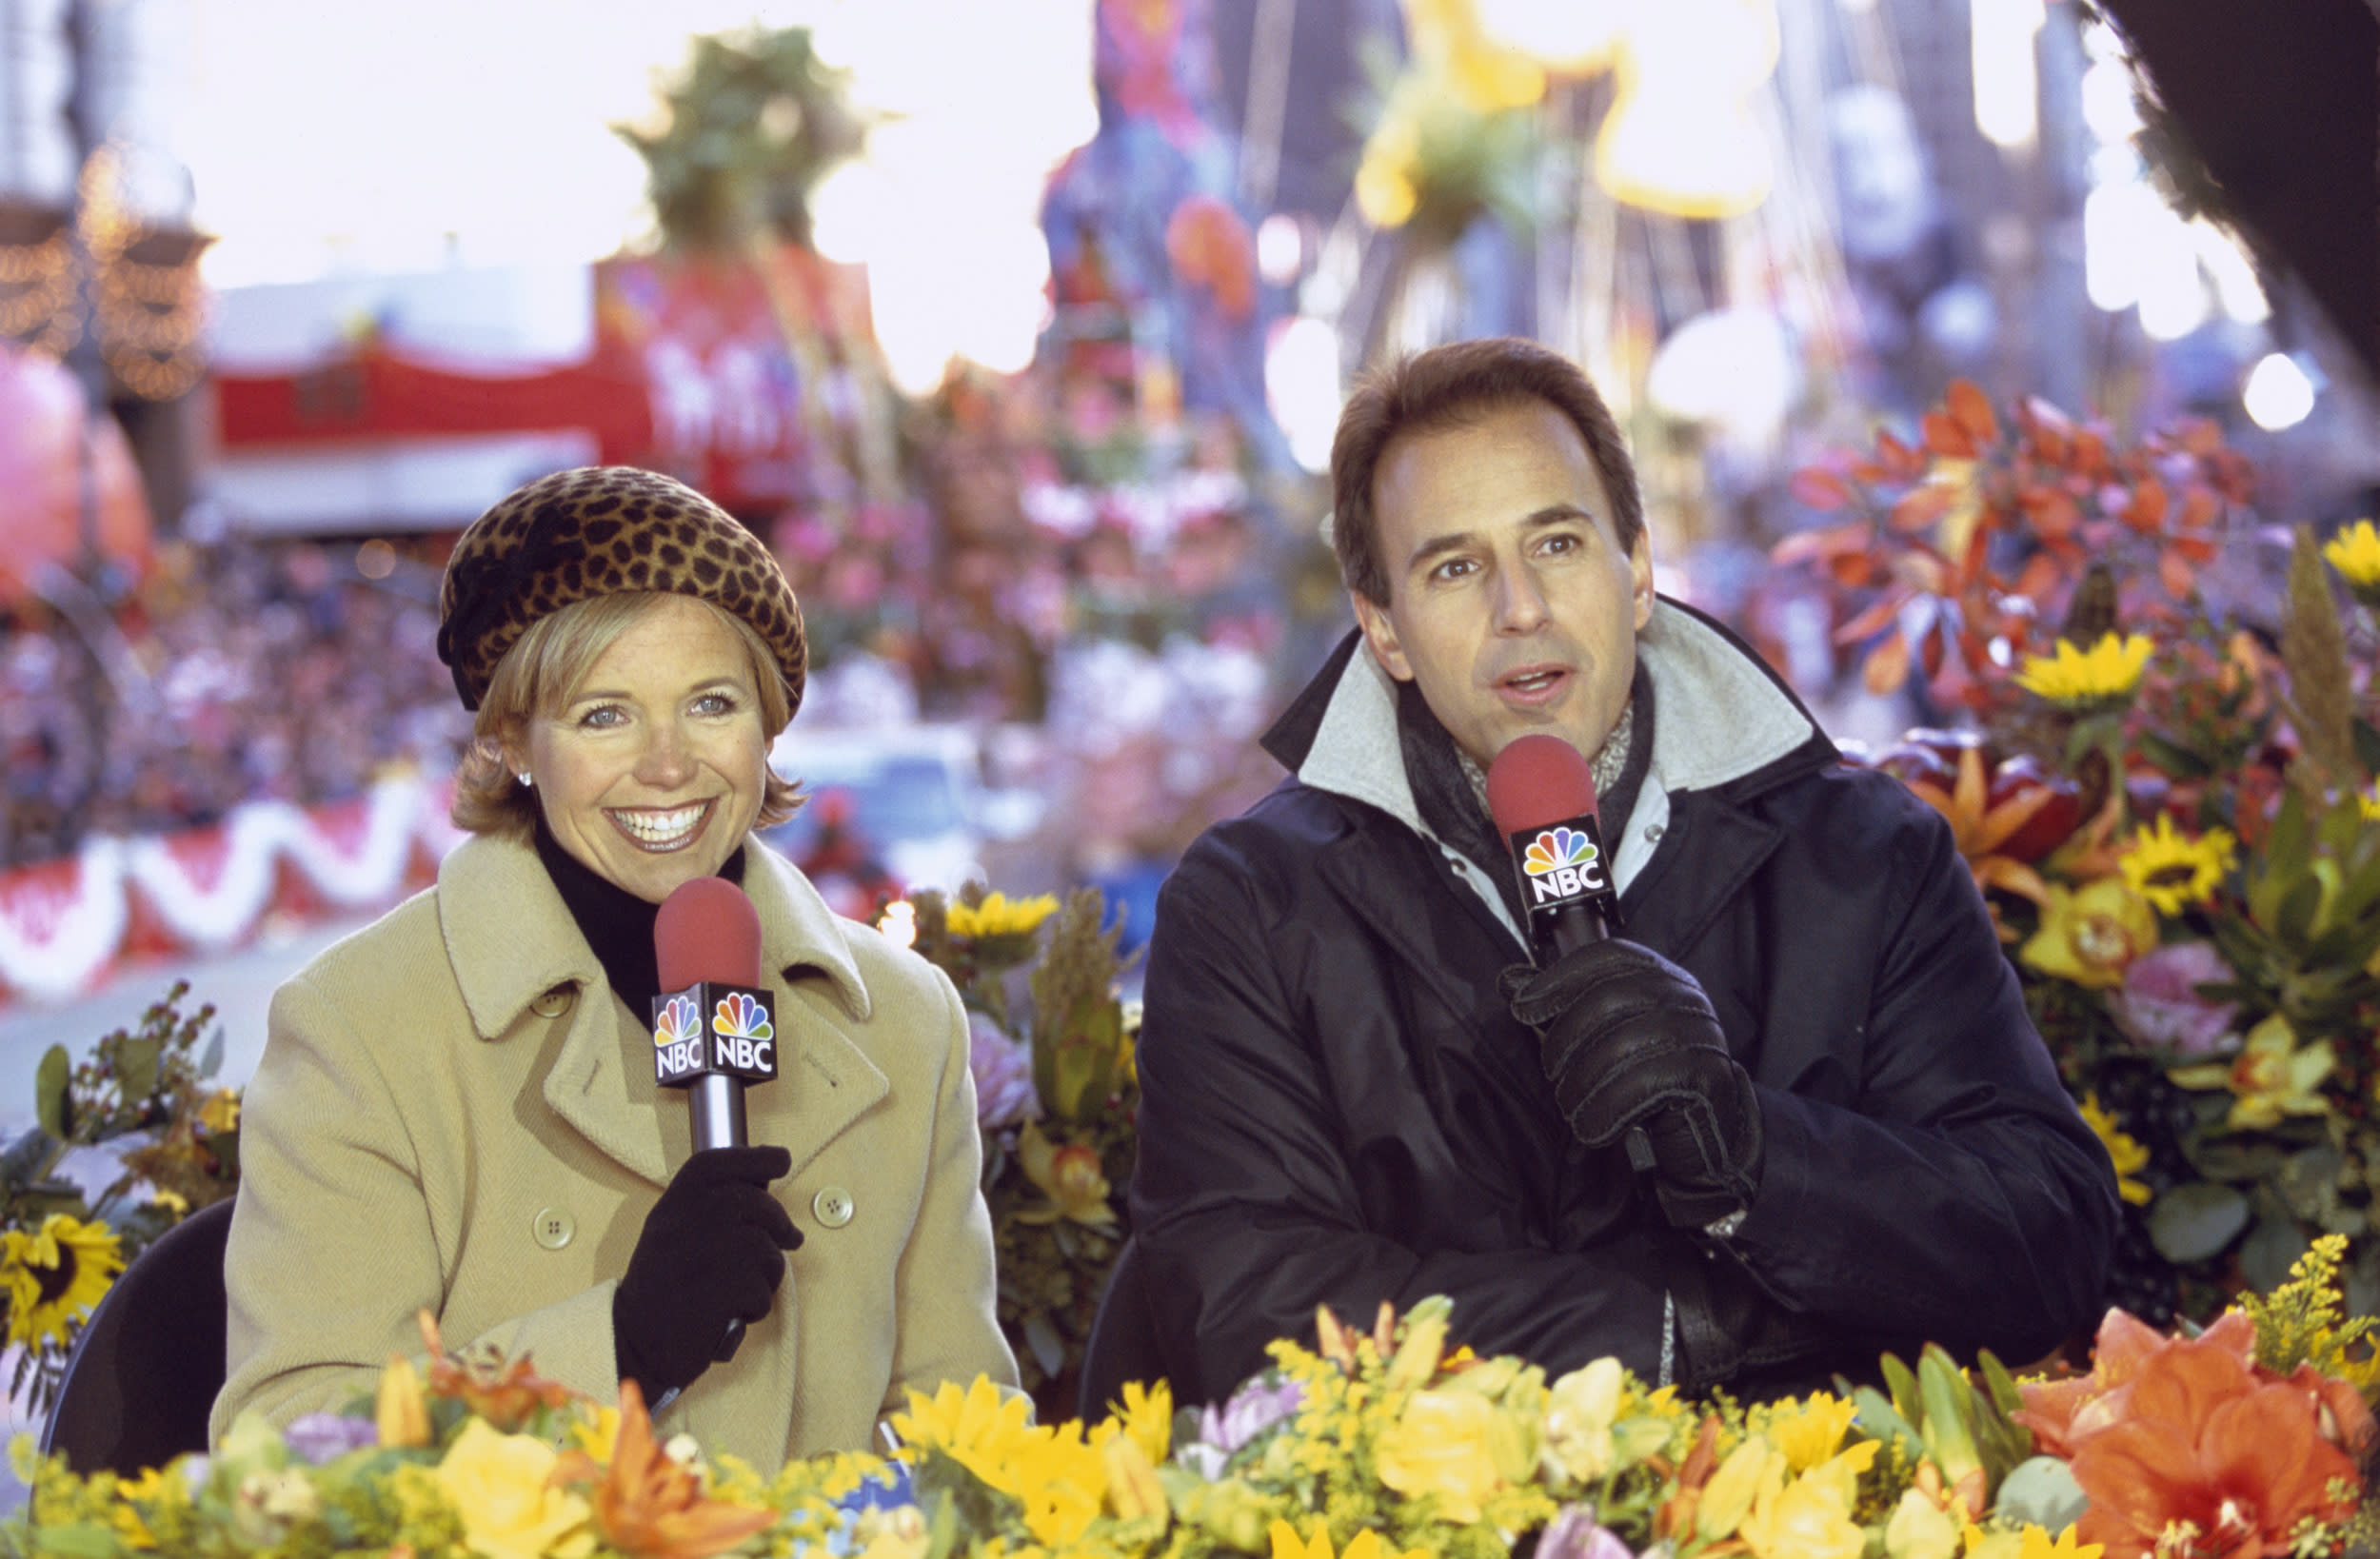 MACY'S THANKSGIVING DAY PARADE -- Pictured: (l-r) Hosts Katie Couric, Matt Lauer during the 2000 Macy's Thanksgiving Day Parade  (Photo by Craig Blankenhorn/NBC/NBCU Photo Bank via Getty Images)